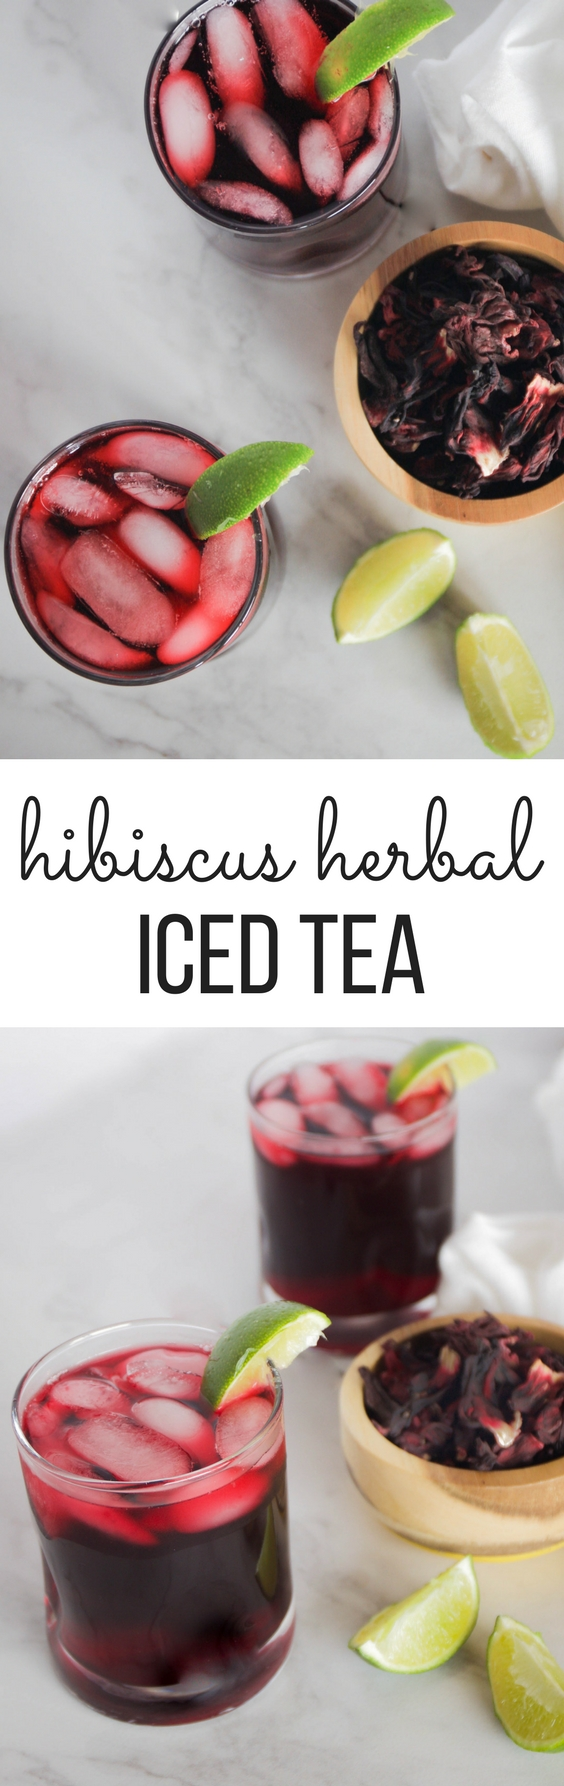 Hibiscus Iced Tea is tart with a hint of sweetness, and is packed with healths benefits. Delightfully invigorating, it's the perfect drink for a summer day!